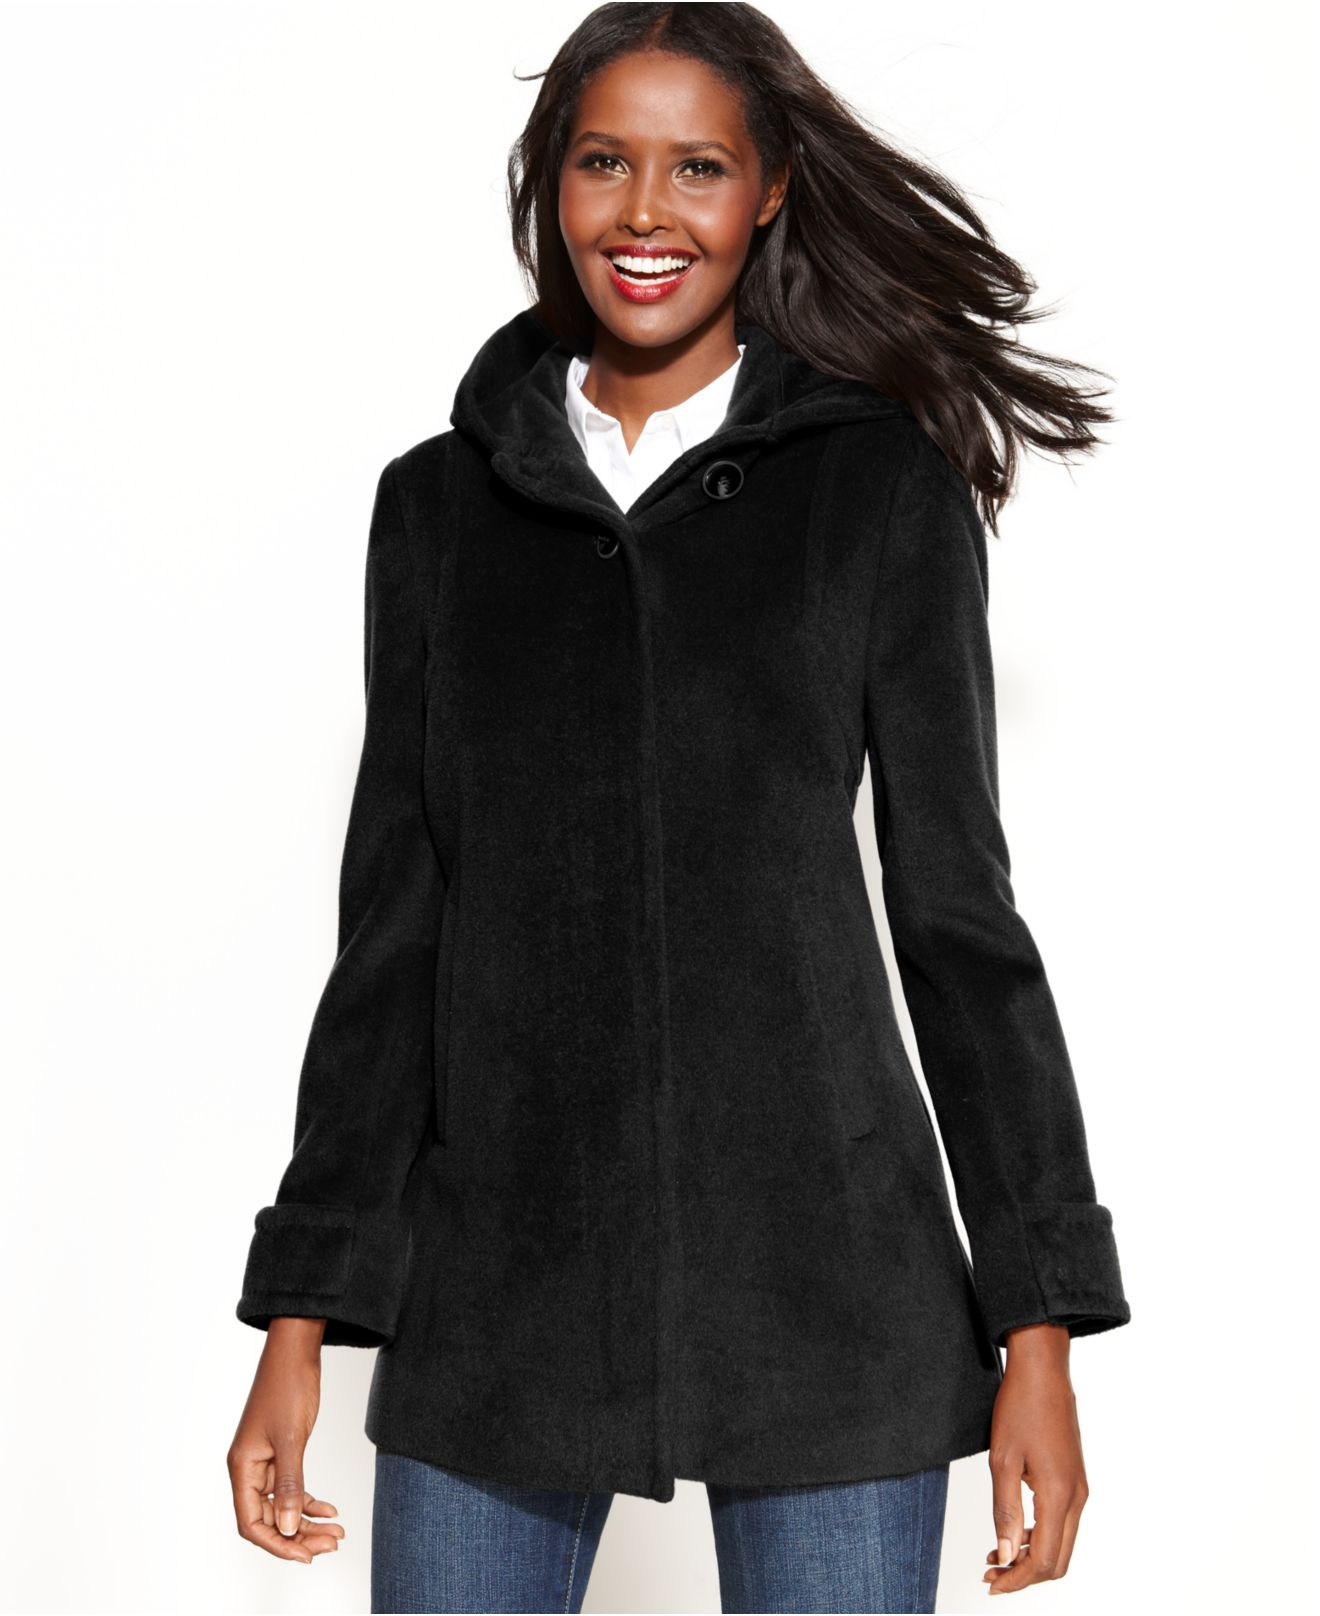 Black Hooded Coat Jacketin